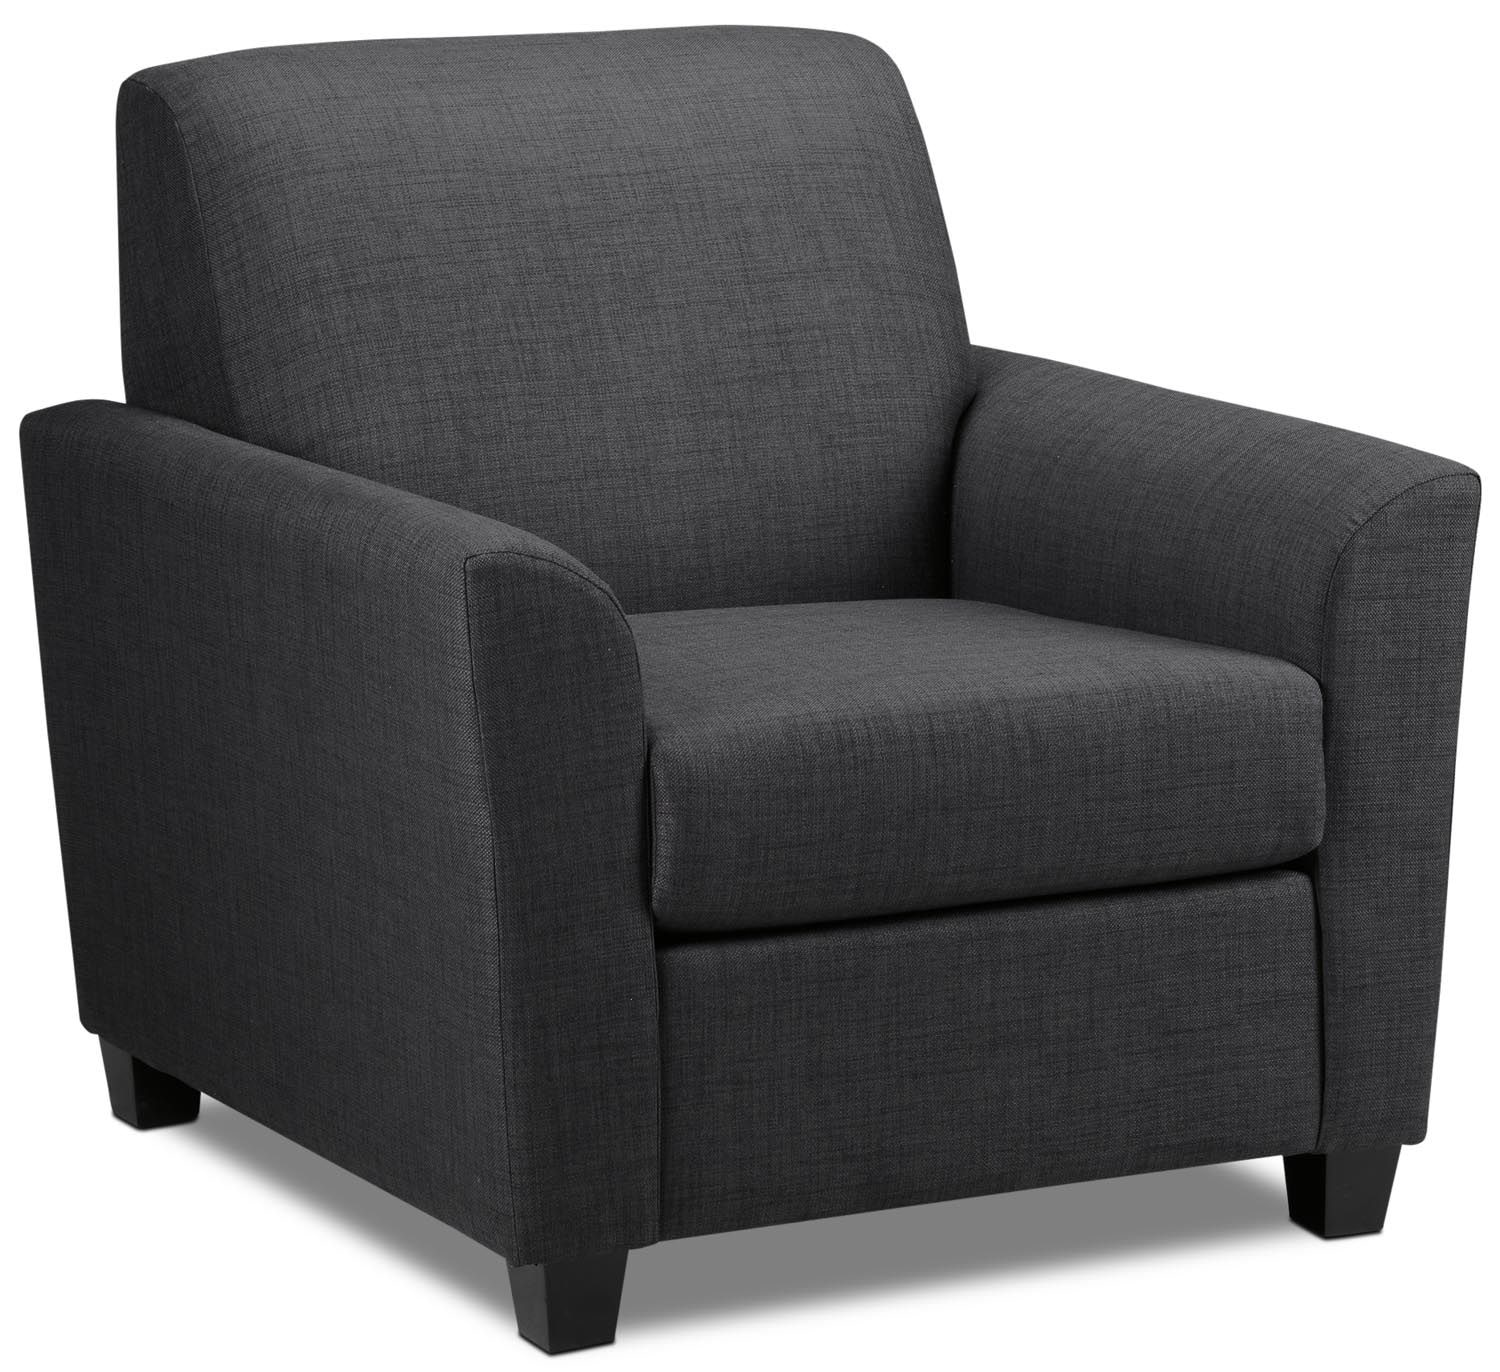 Living Room Furniture - Roxanne Chair - Charcoal